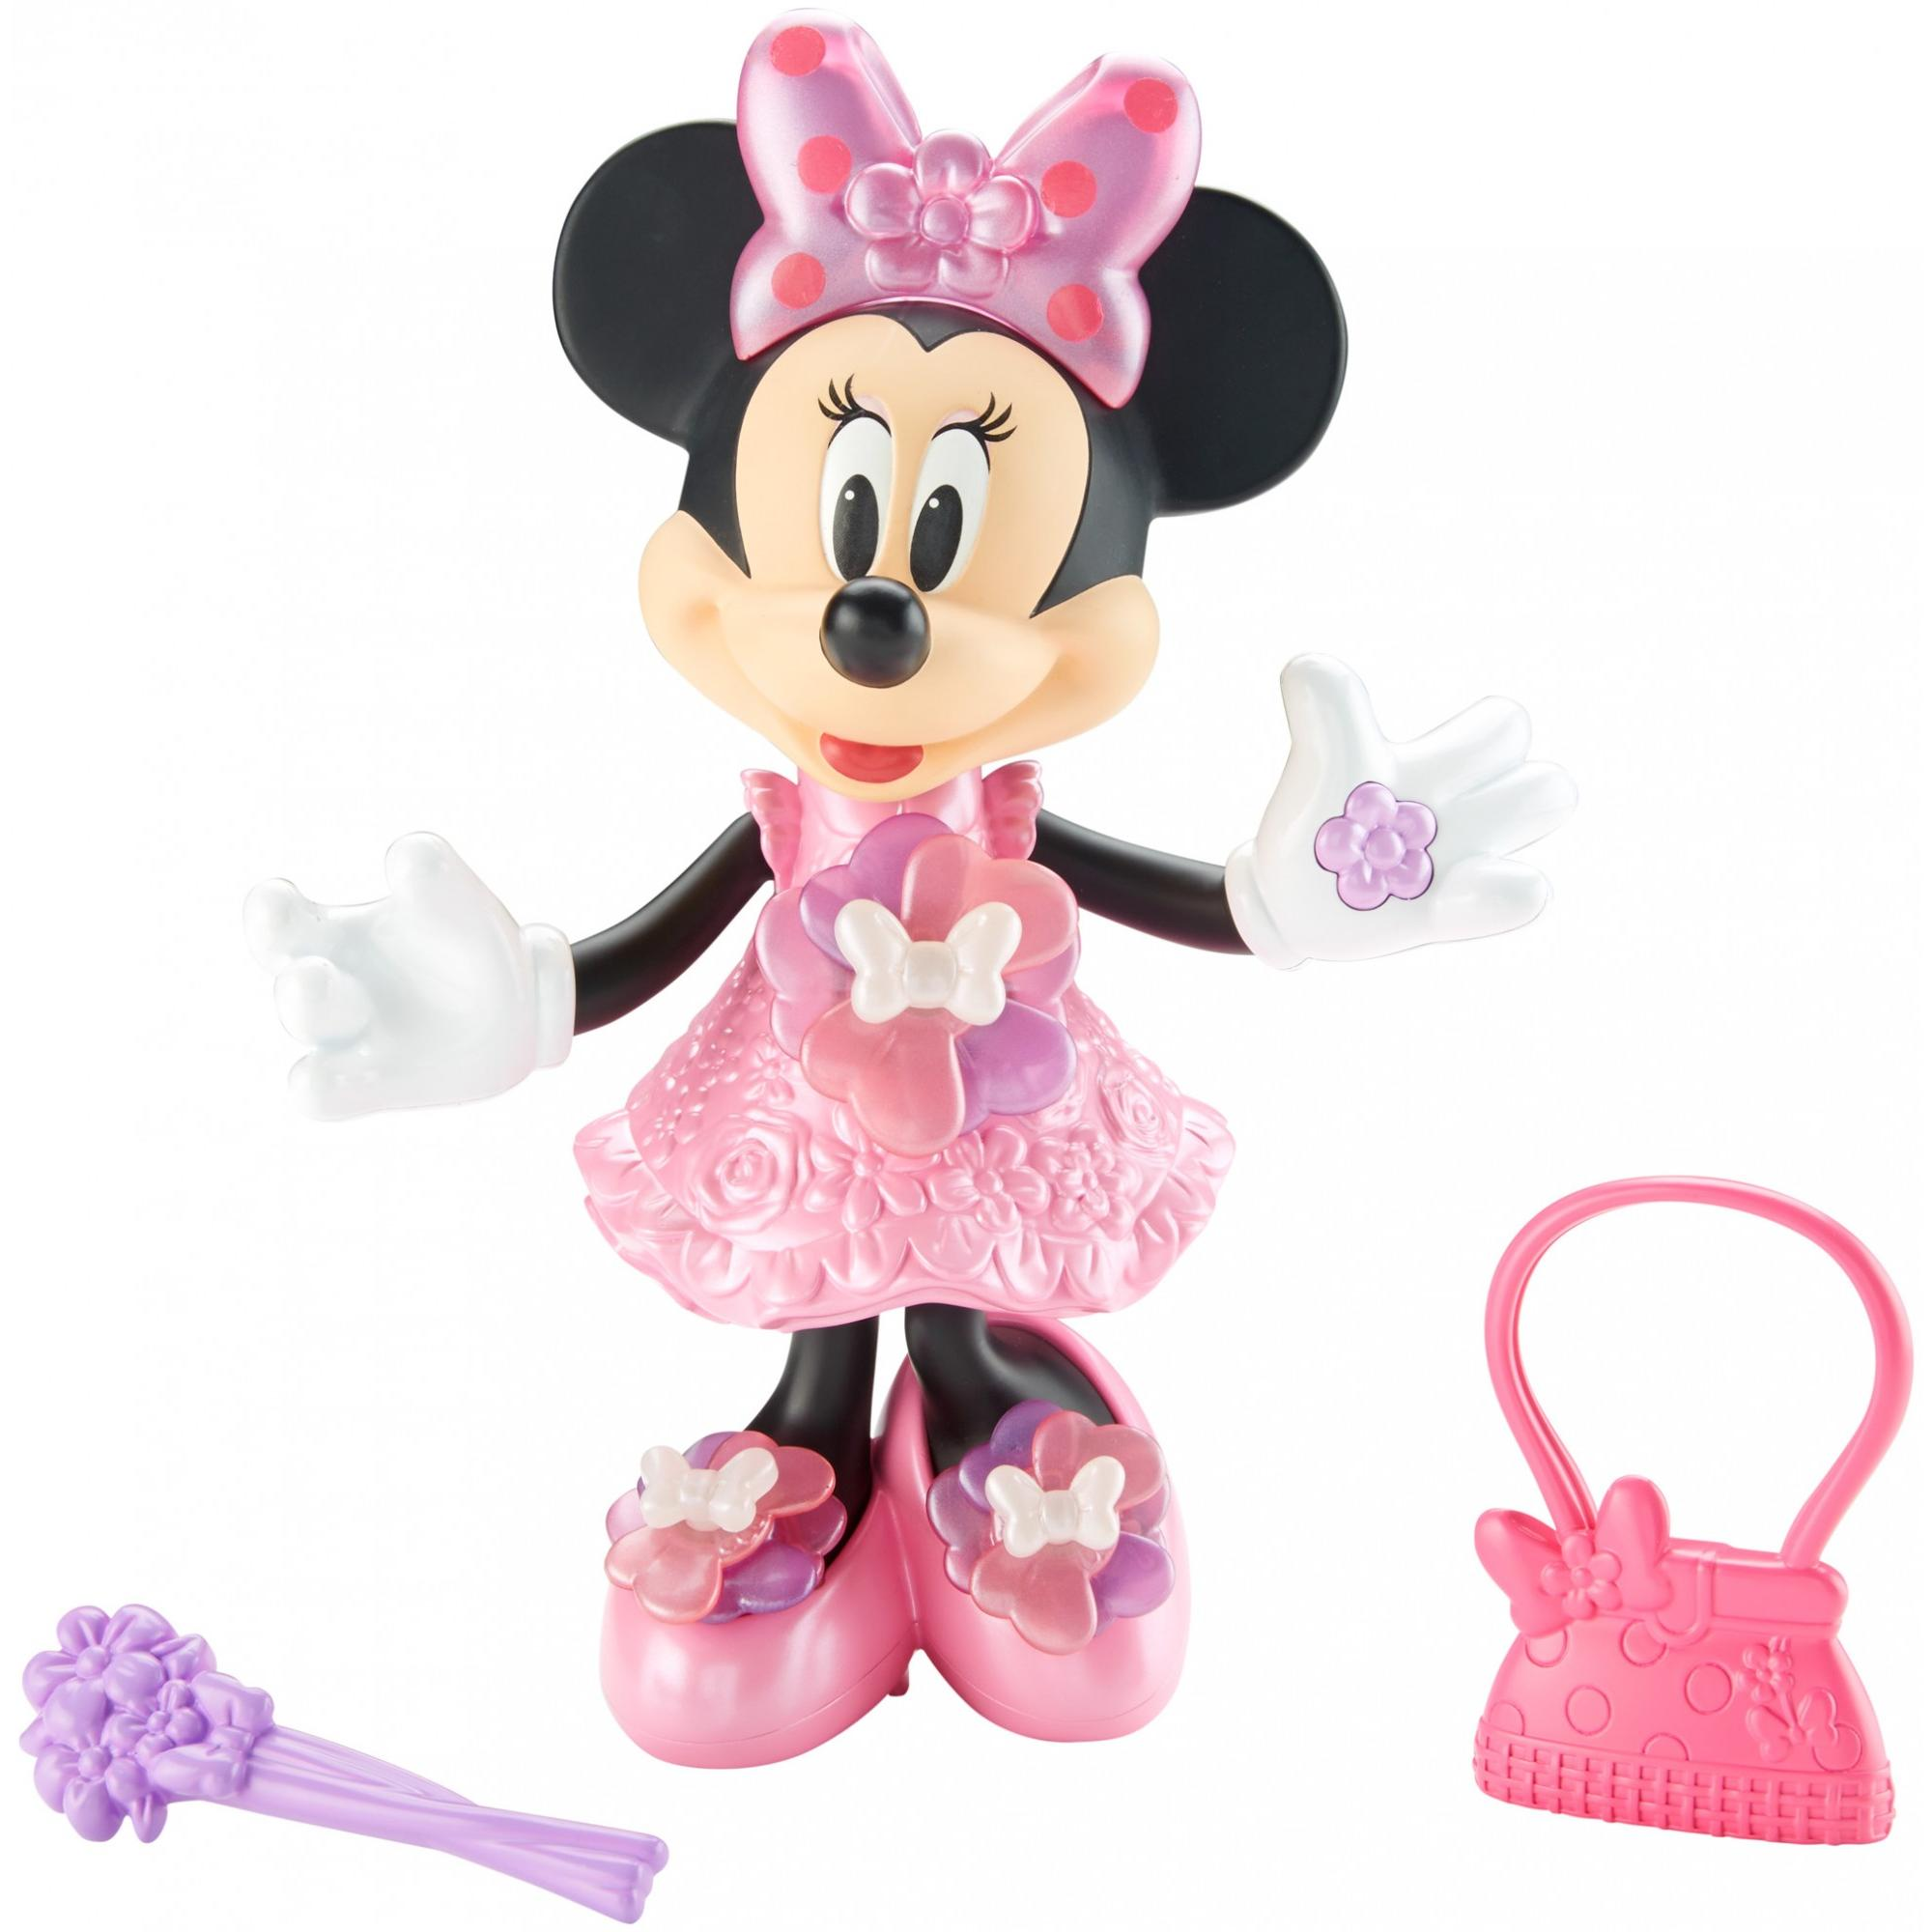 Disney Minnie Mouse Bloomin' Bows Minnie